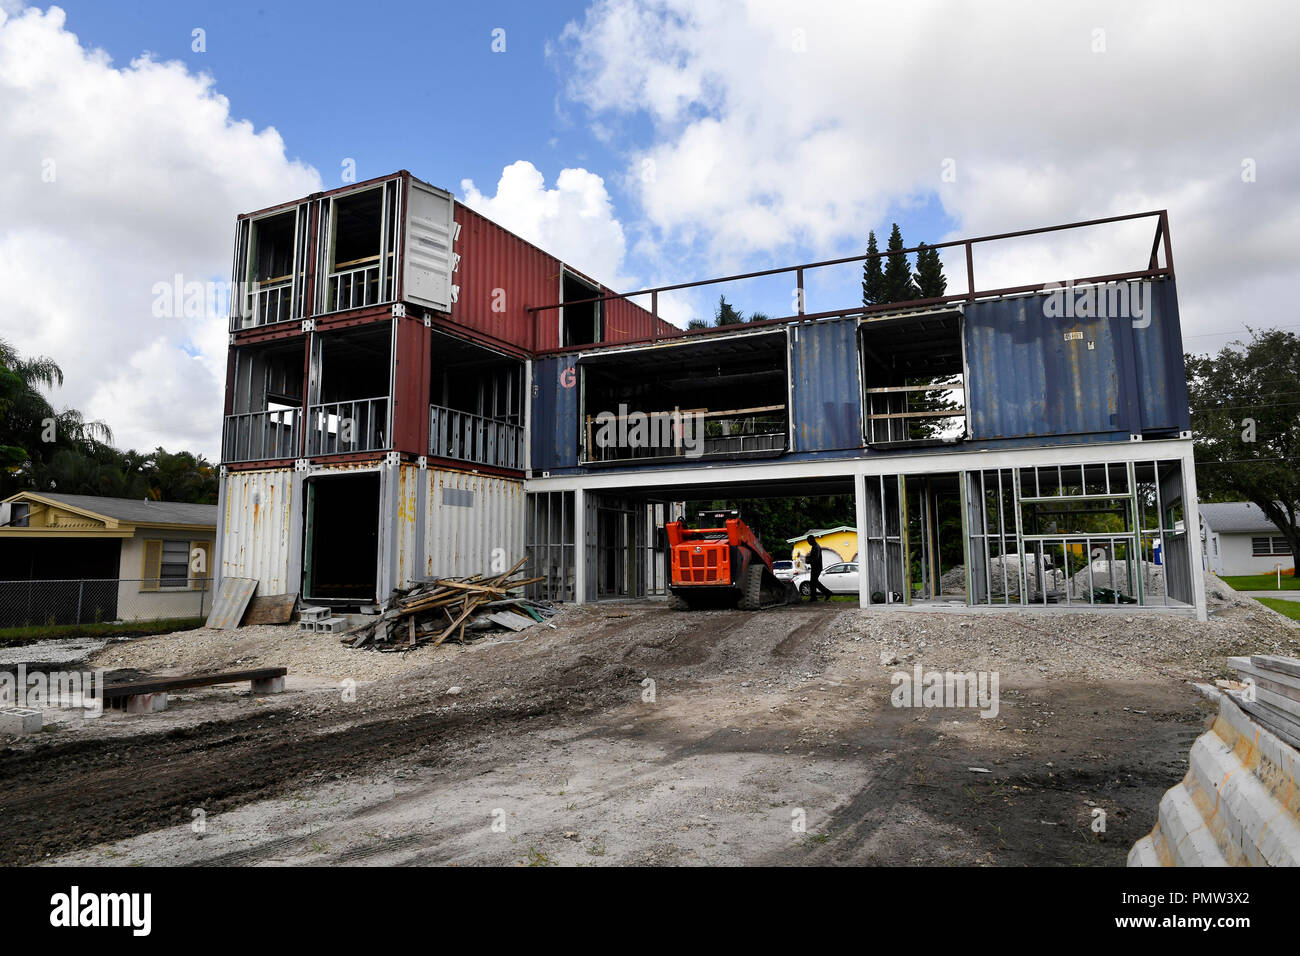 Shipping Container House High Resolution Stock Photography And Images Alamy